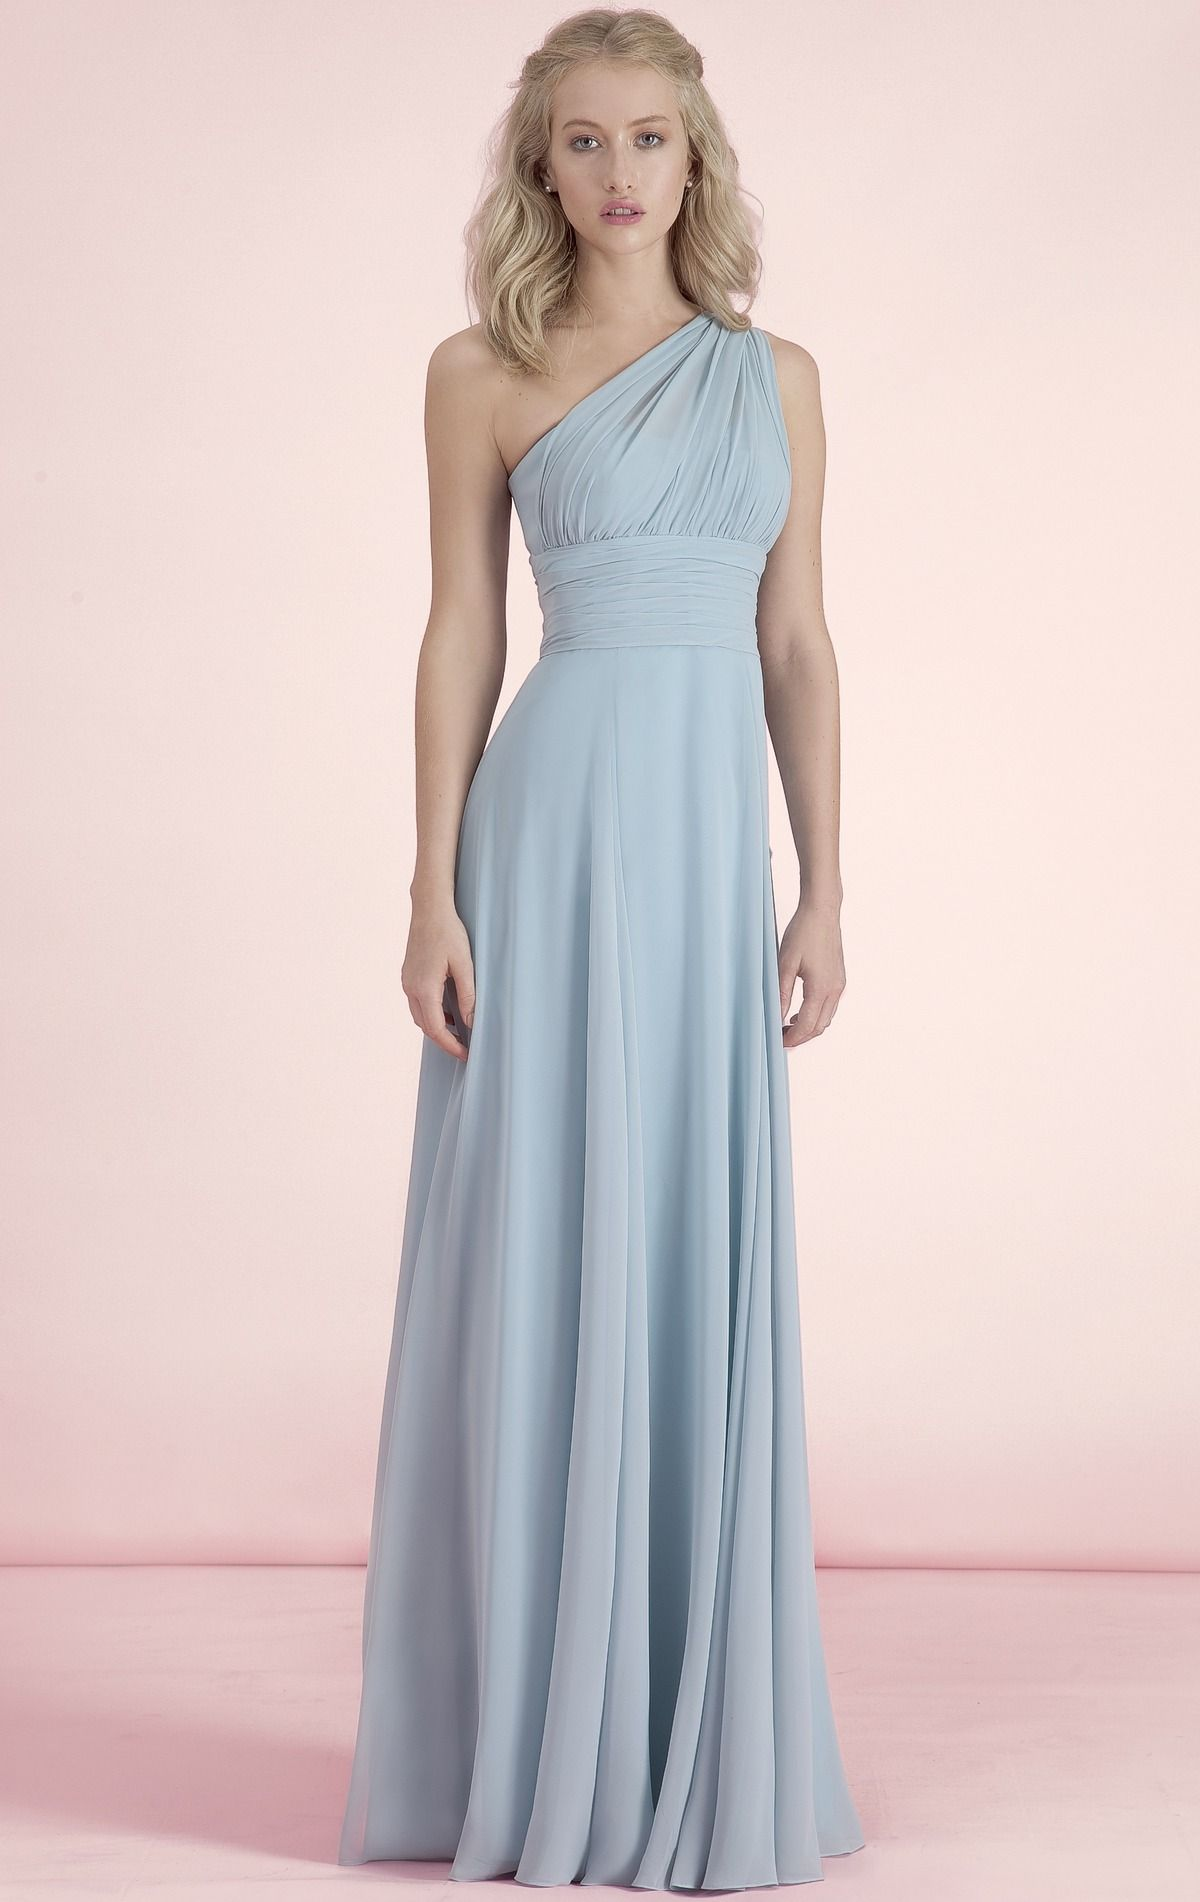 Kelsey Rose Bridesmaid Dress 50116 - the link shows all 6 diff ...